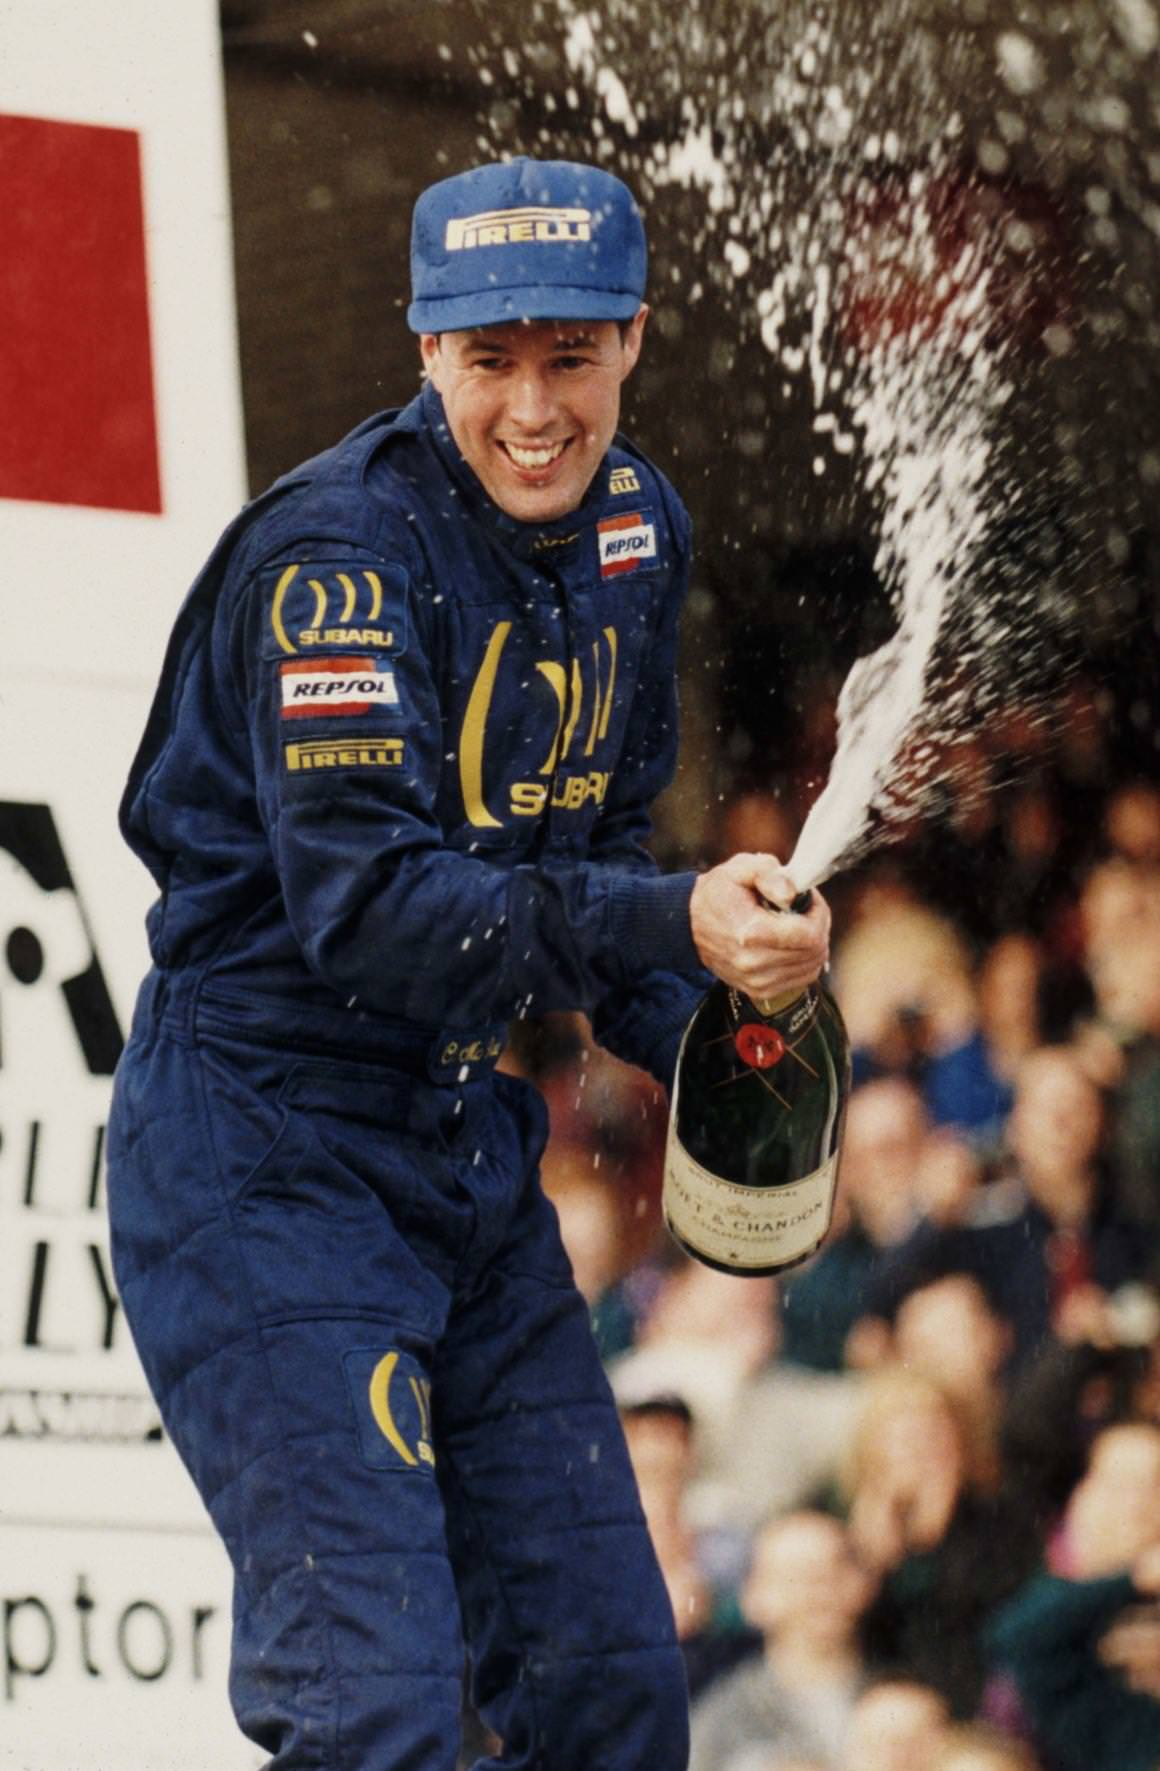 Colin McRae sprays champagne after winning the WRC title in 1995